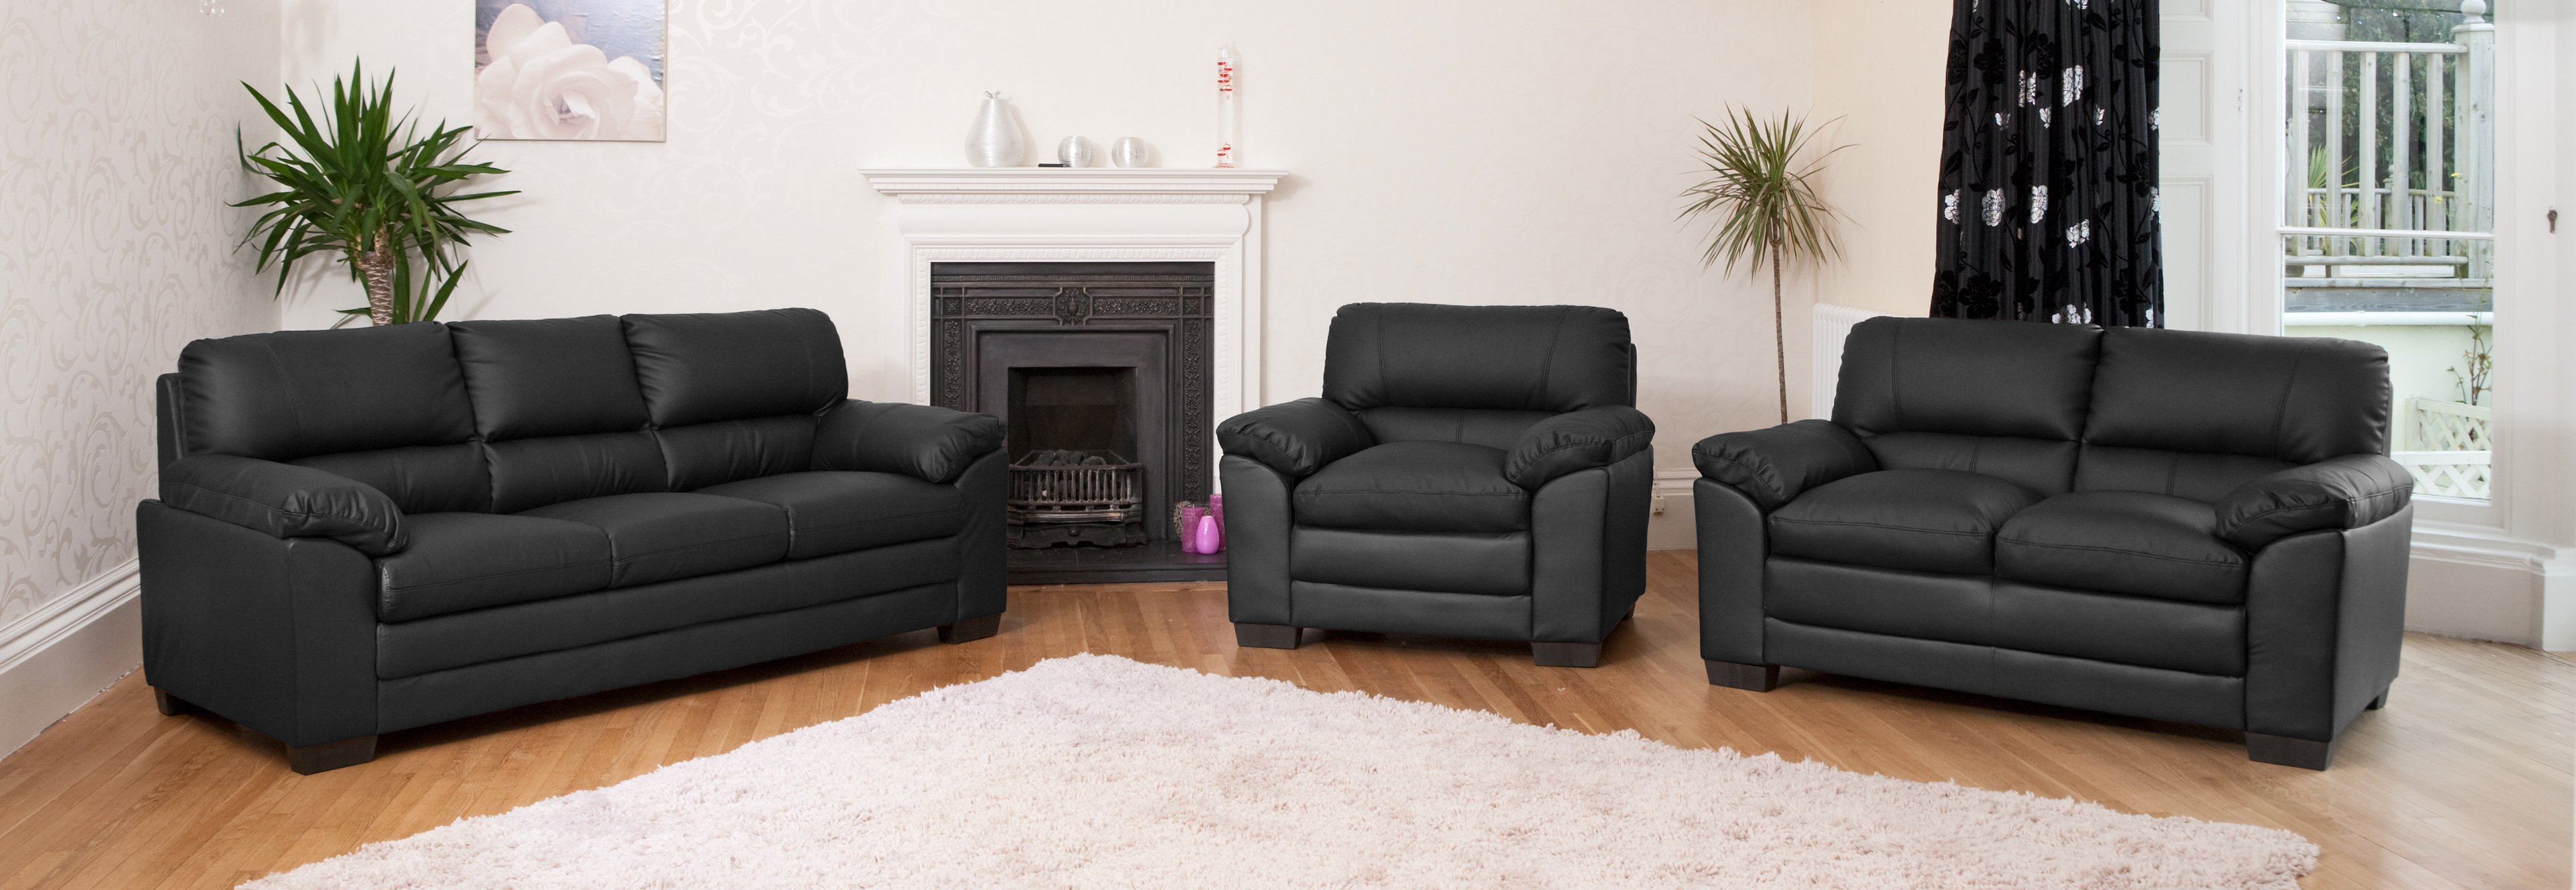 Sotherby Suite black